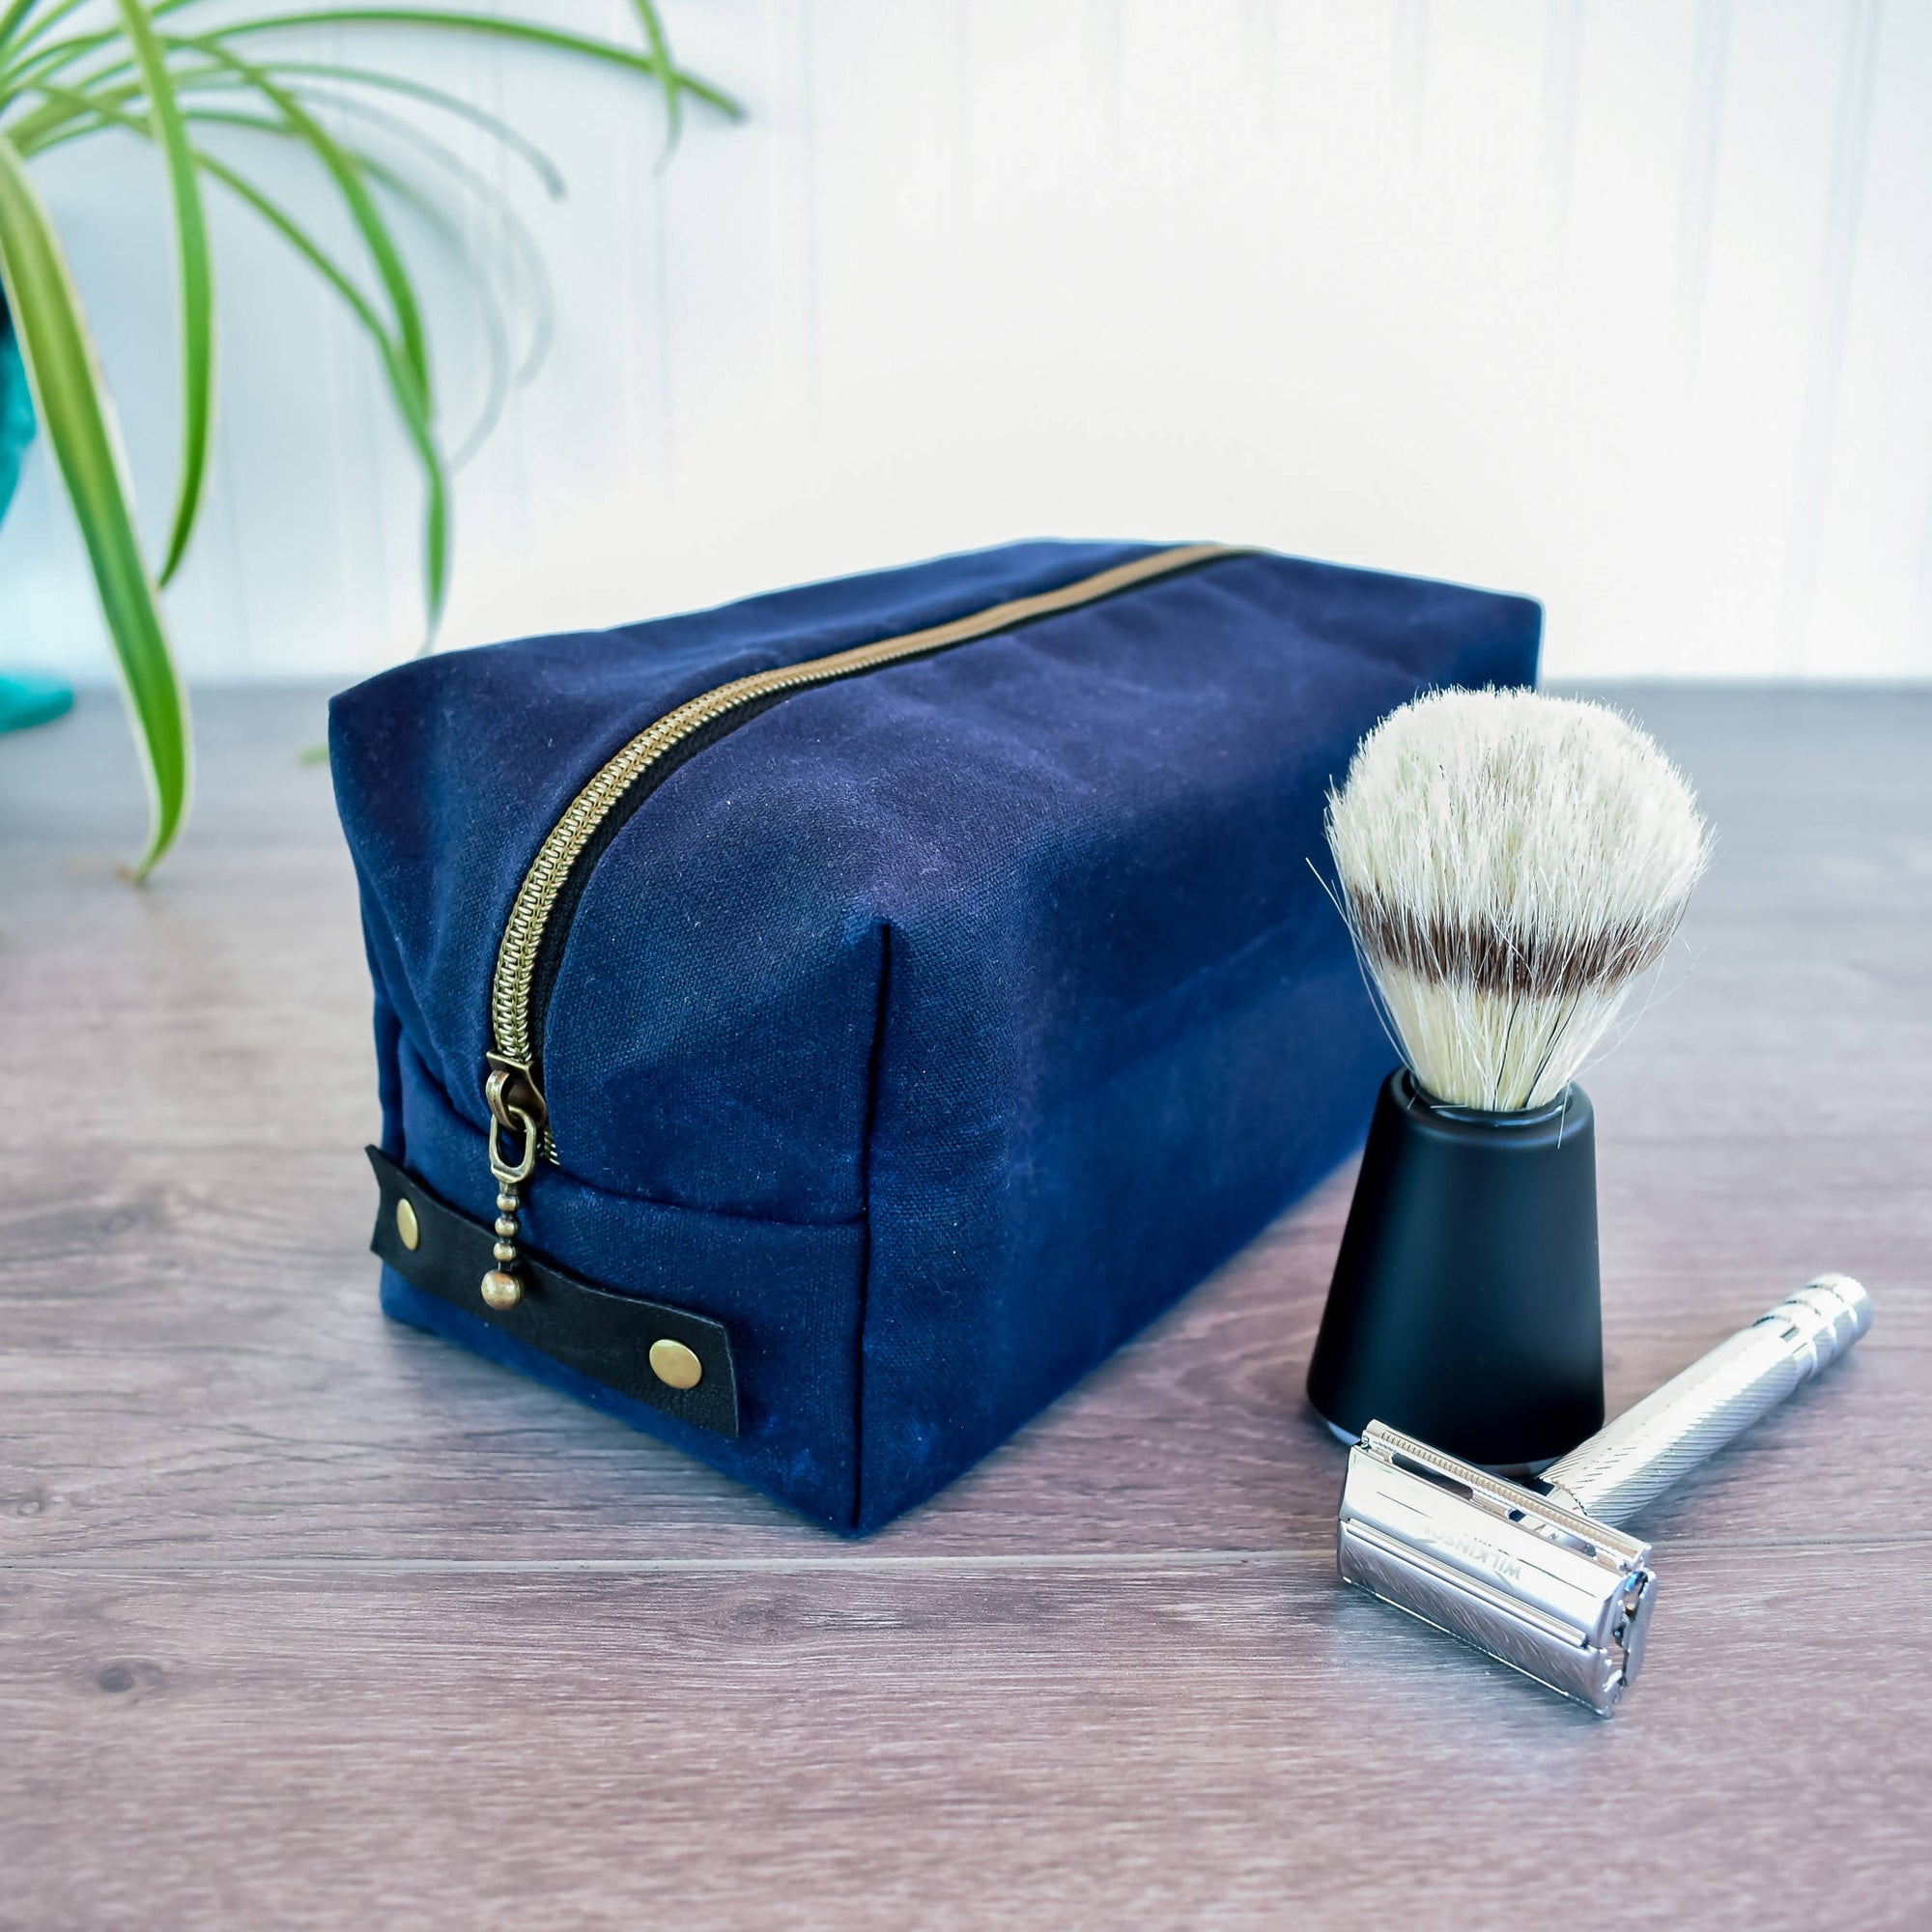 Navy Blue Waxed Canvas Dopp Kit Toiletry Bag